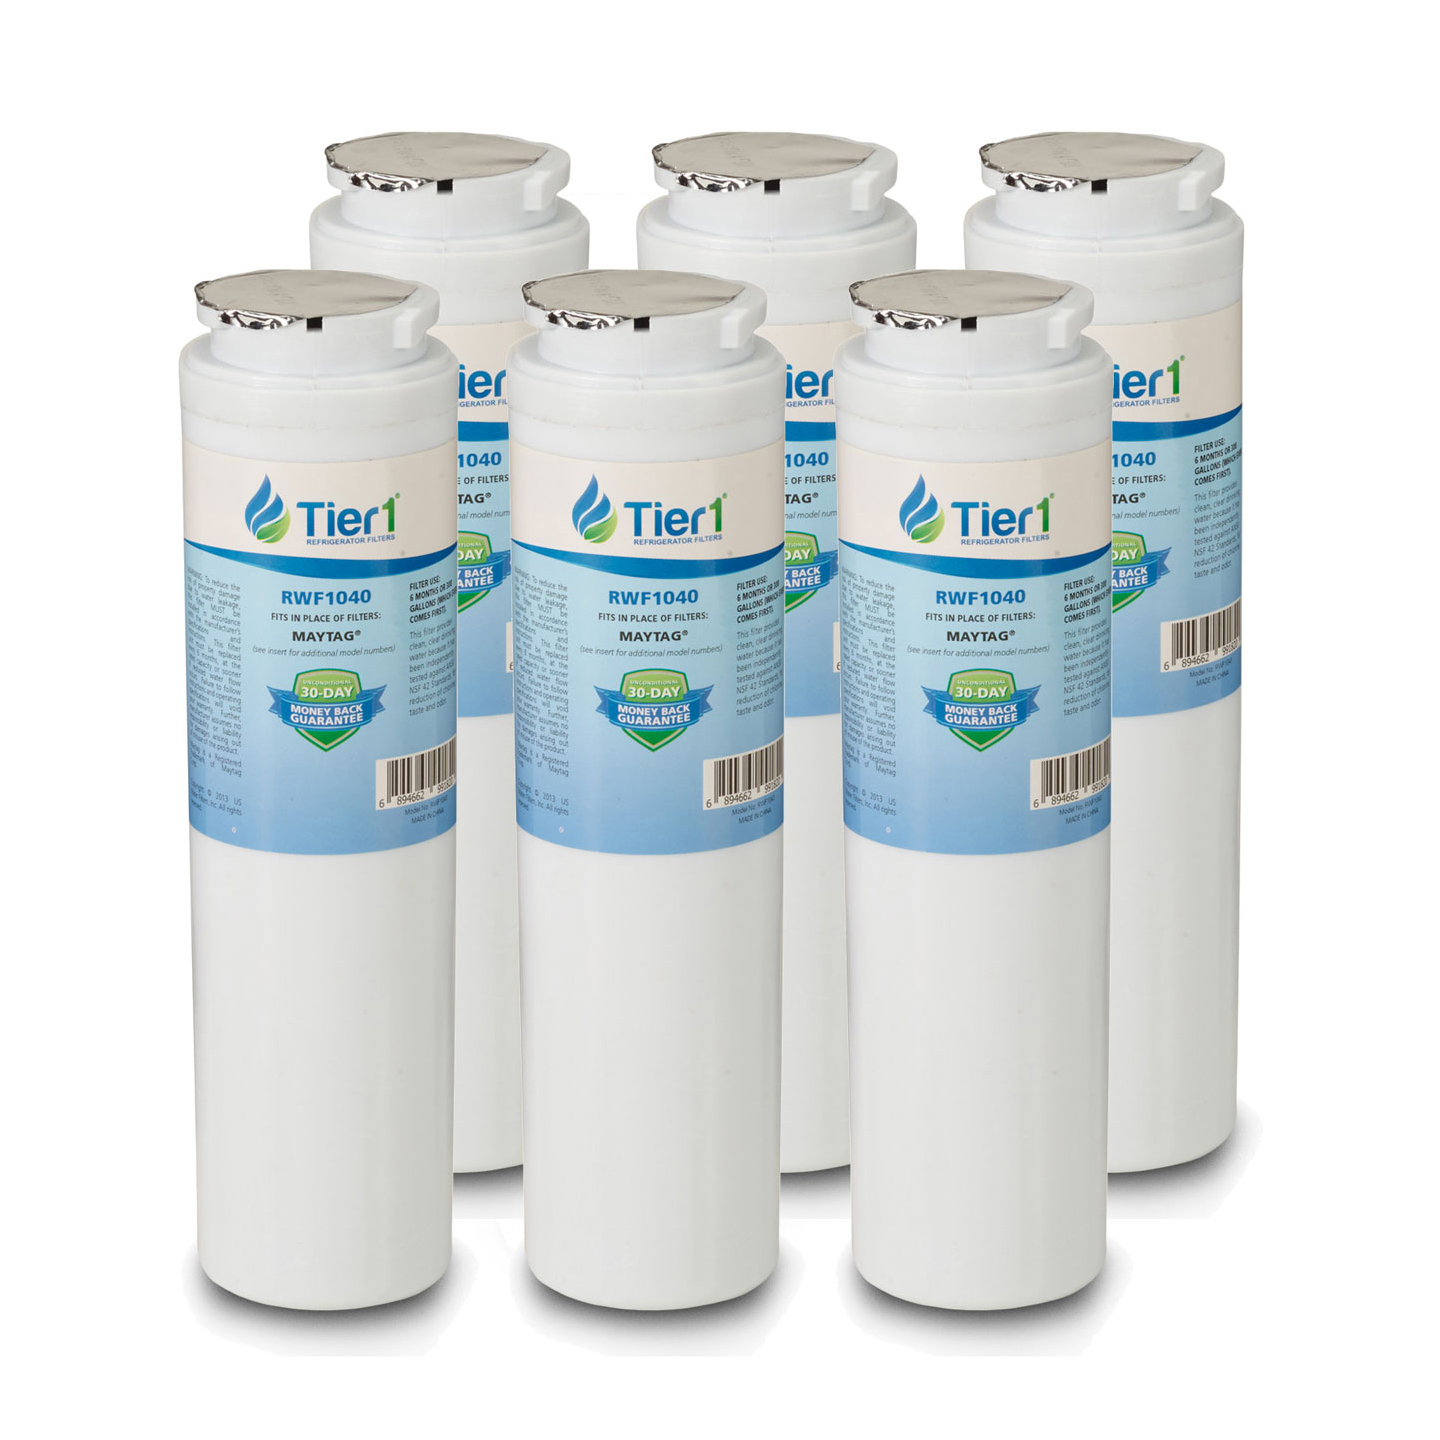 UKF8001 Maytag Comparable Refrigerator Water Filter Replacement By Tier1 (6 Pack) TIER1_RWF1040_6_PACK